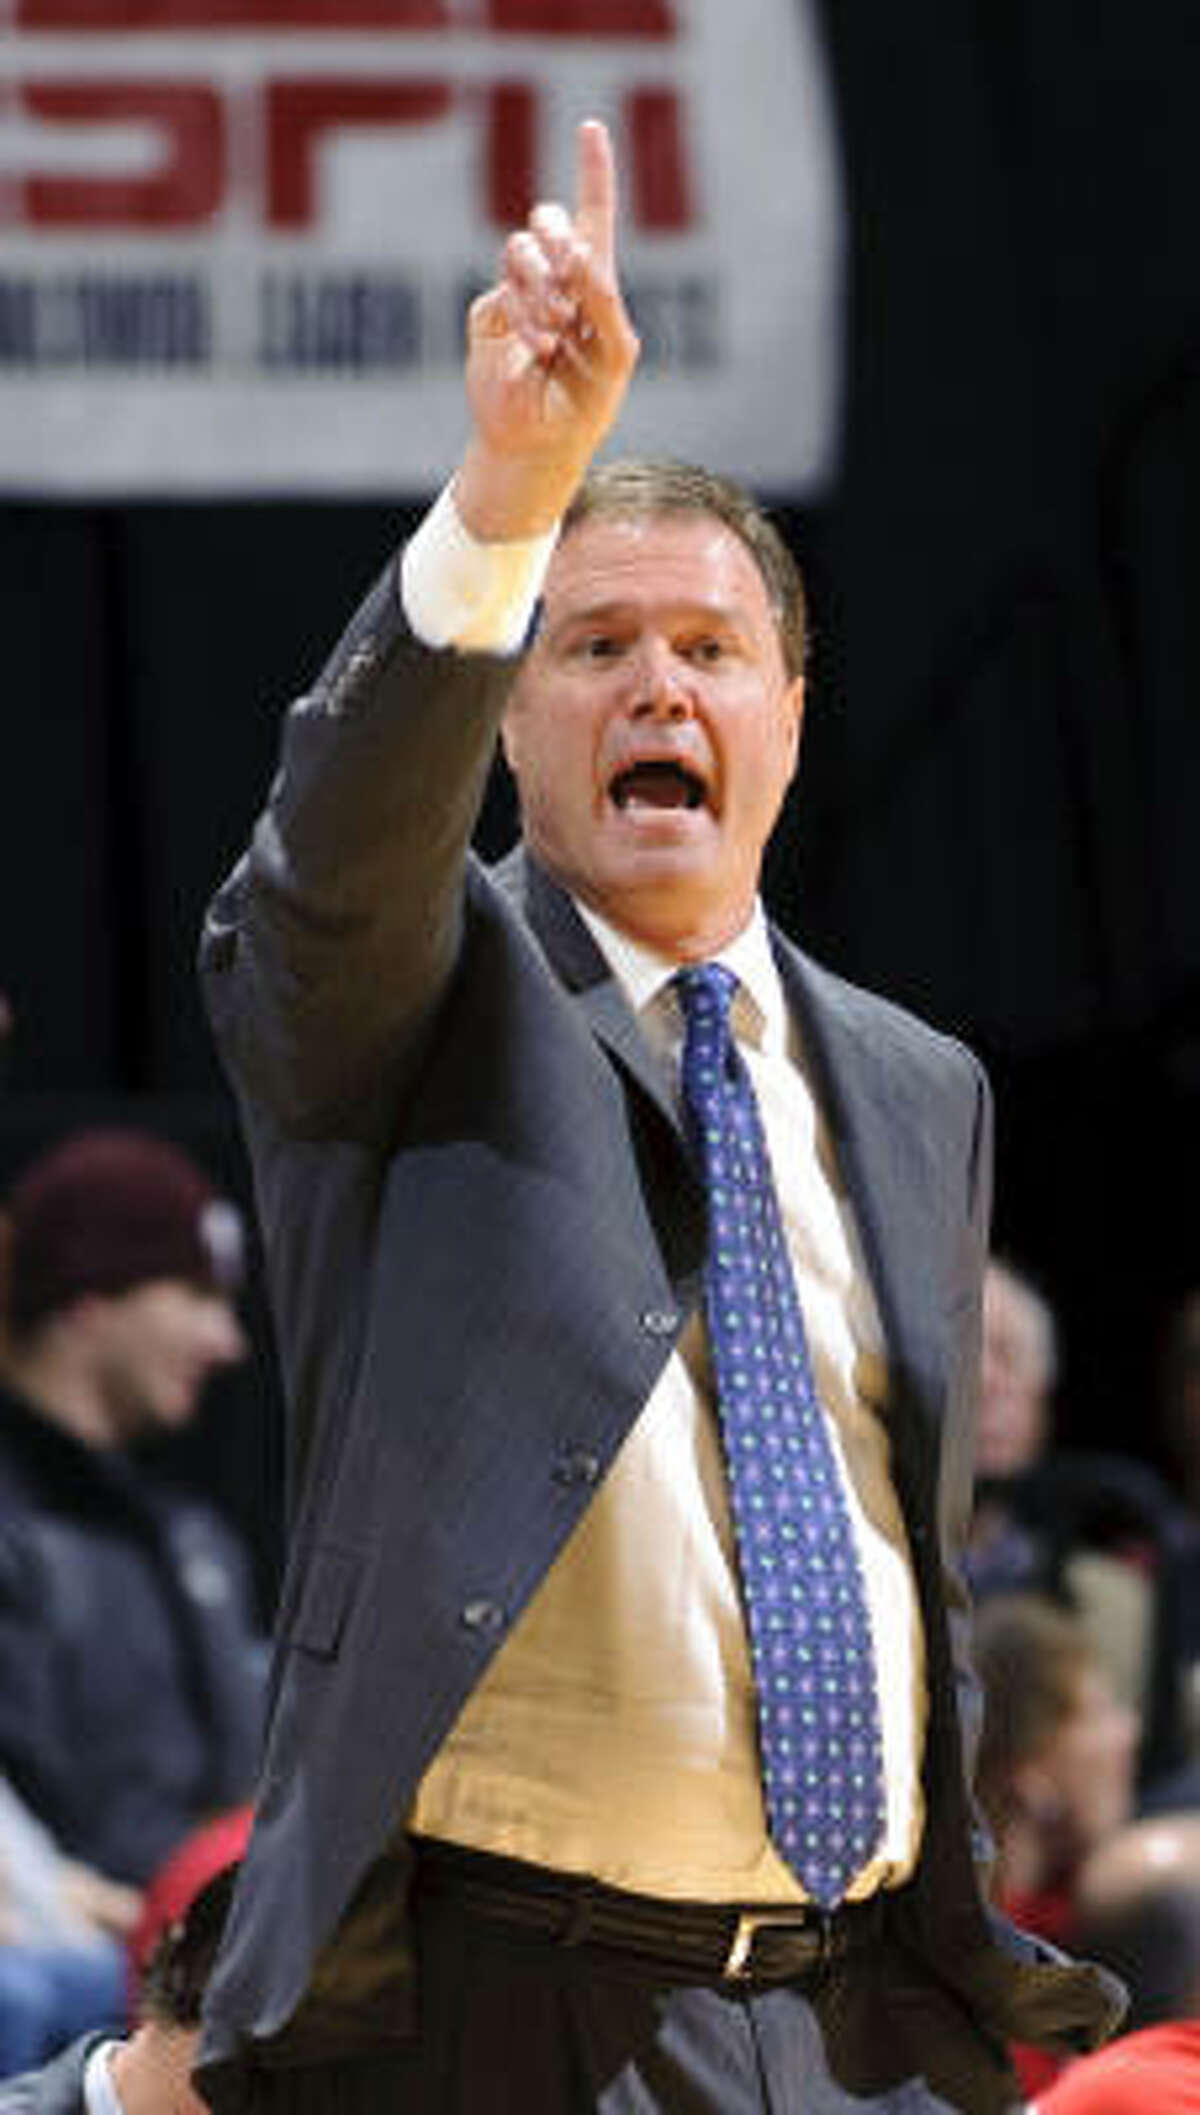 Kansas head coach Bill Self directs his team during the first half, during which his team was outscored 32-20 by Texas A&M.